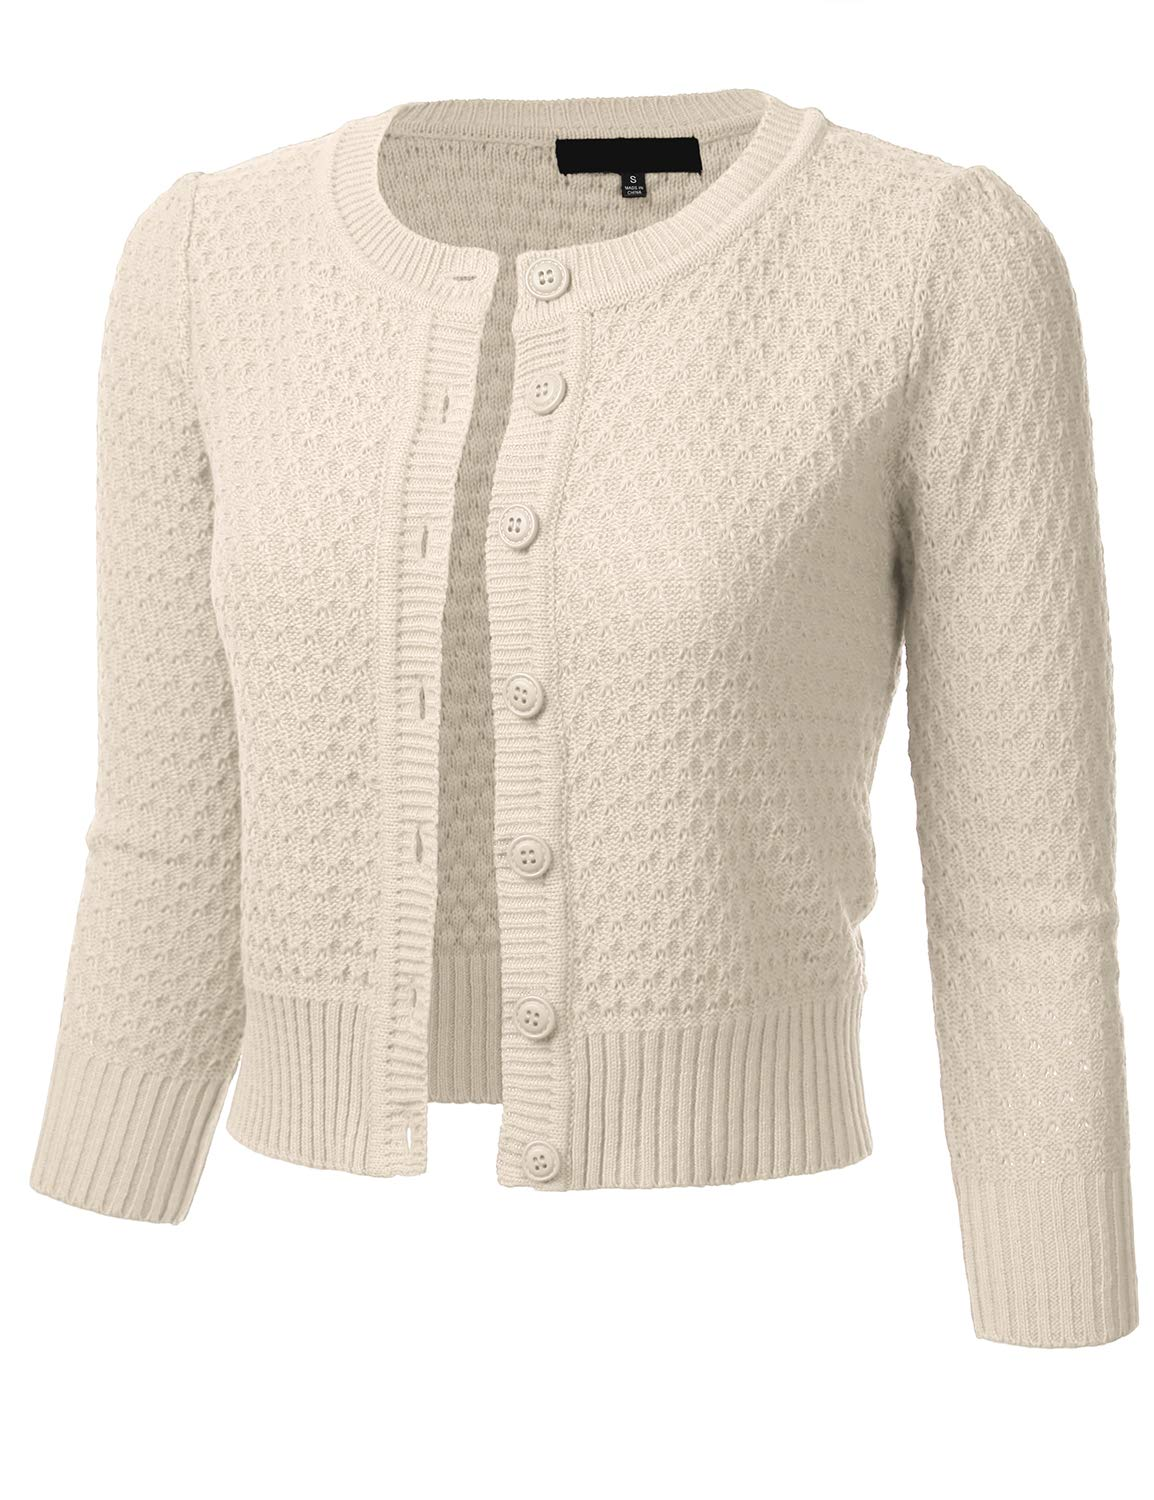 1930s Style Blouses, Shirts, Tops | Vintage Blouses FLORIA Womens Button Down 3/4 Sleeve Crew Neck Cotton Knit Cropped Cardigan Sweater (S-3X) $24.99 AT vintagedancer.com